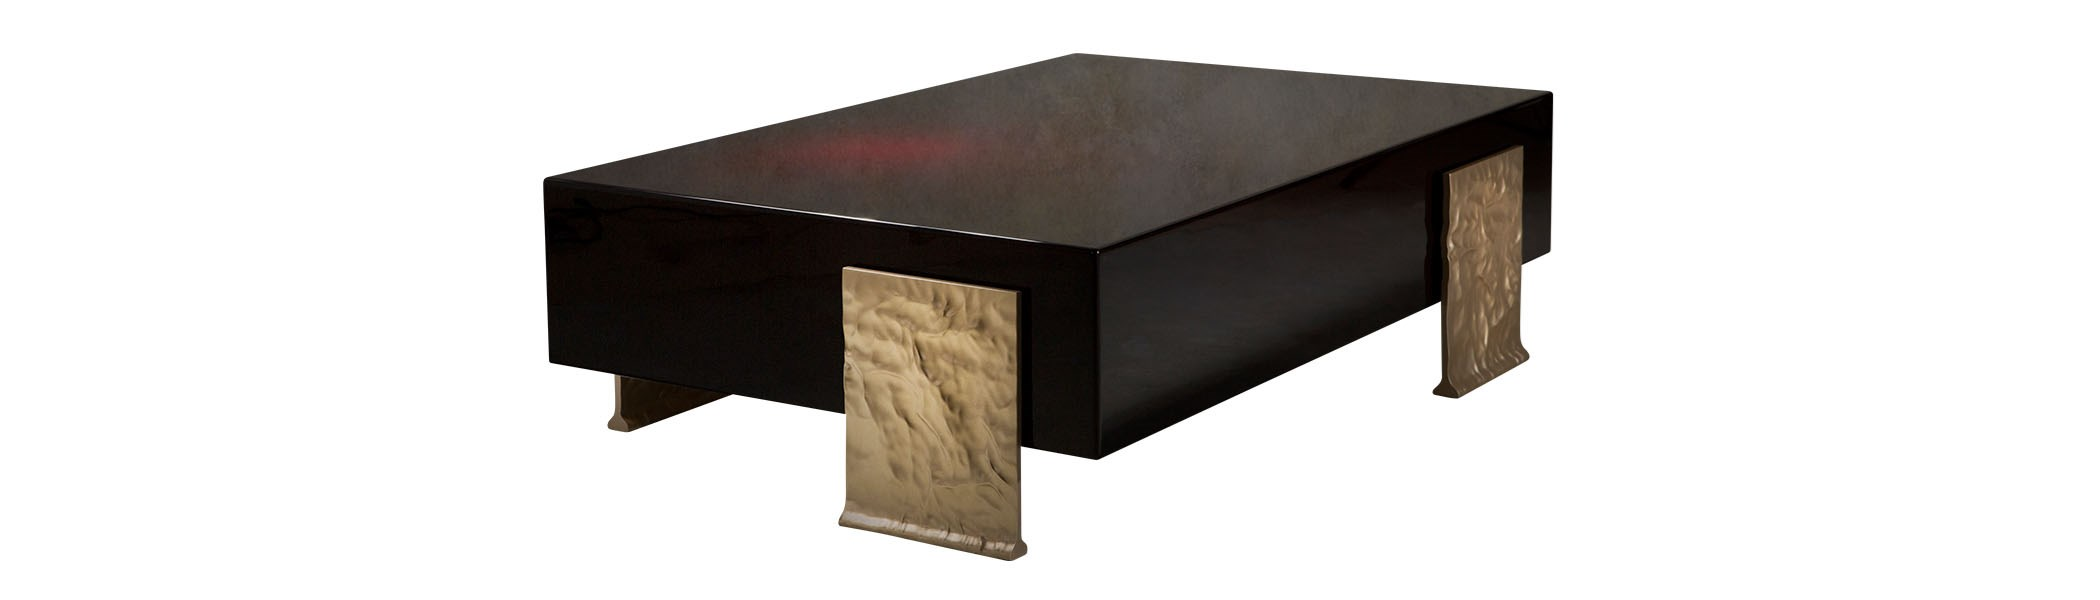 Bespoke Luxury Furniture | davidsonlondon.com